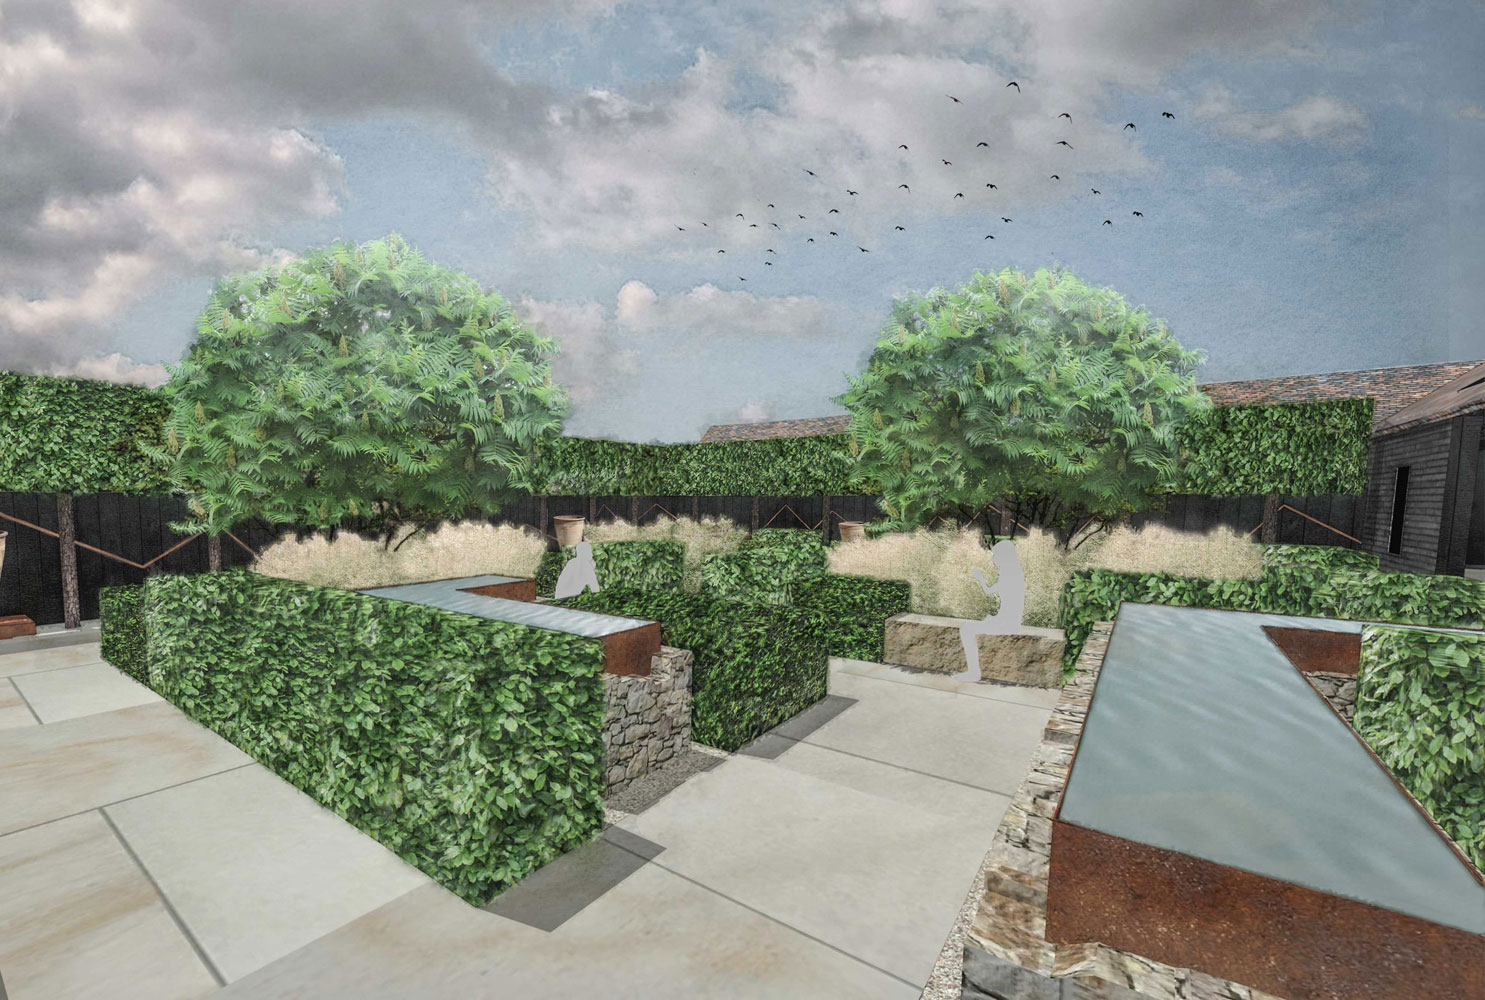 Colm Joseph Gardens - Courtyard gardens sandstone corten water features pleached trees modern design